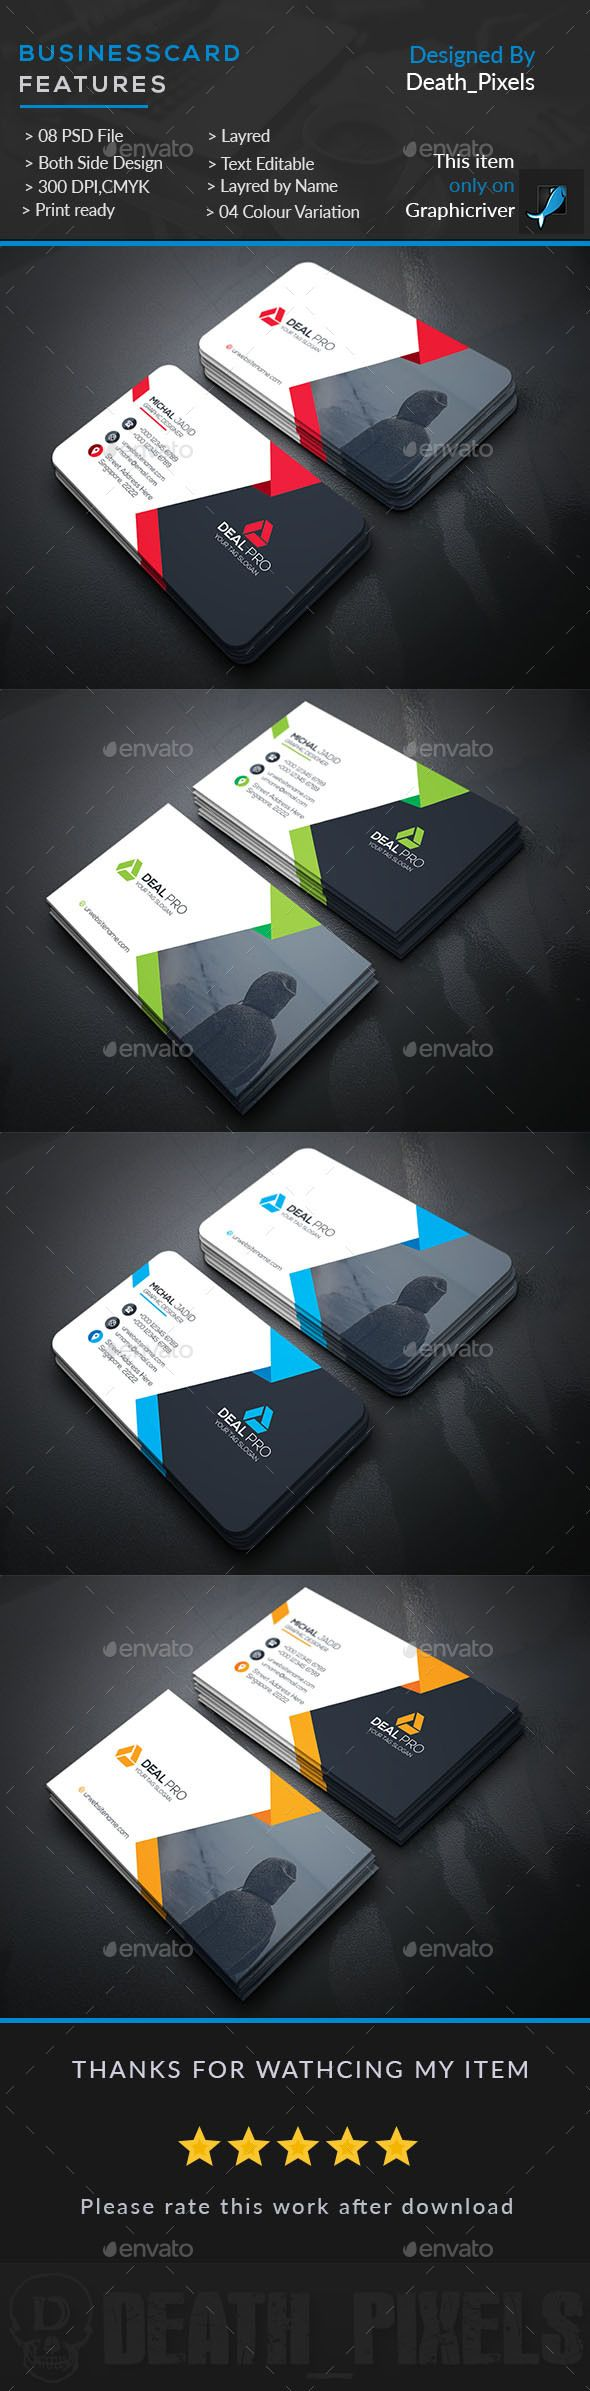 10 best free business card images on pinterest free business